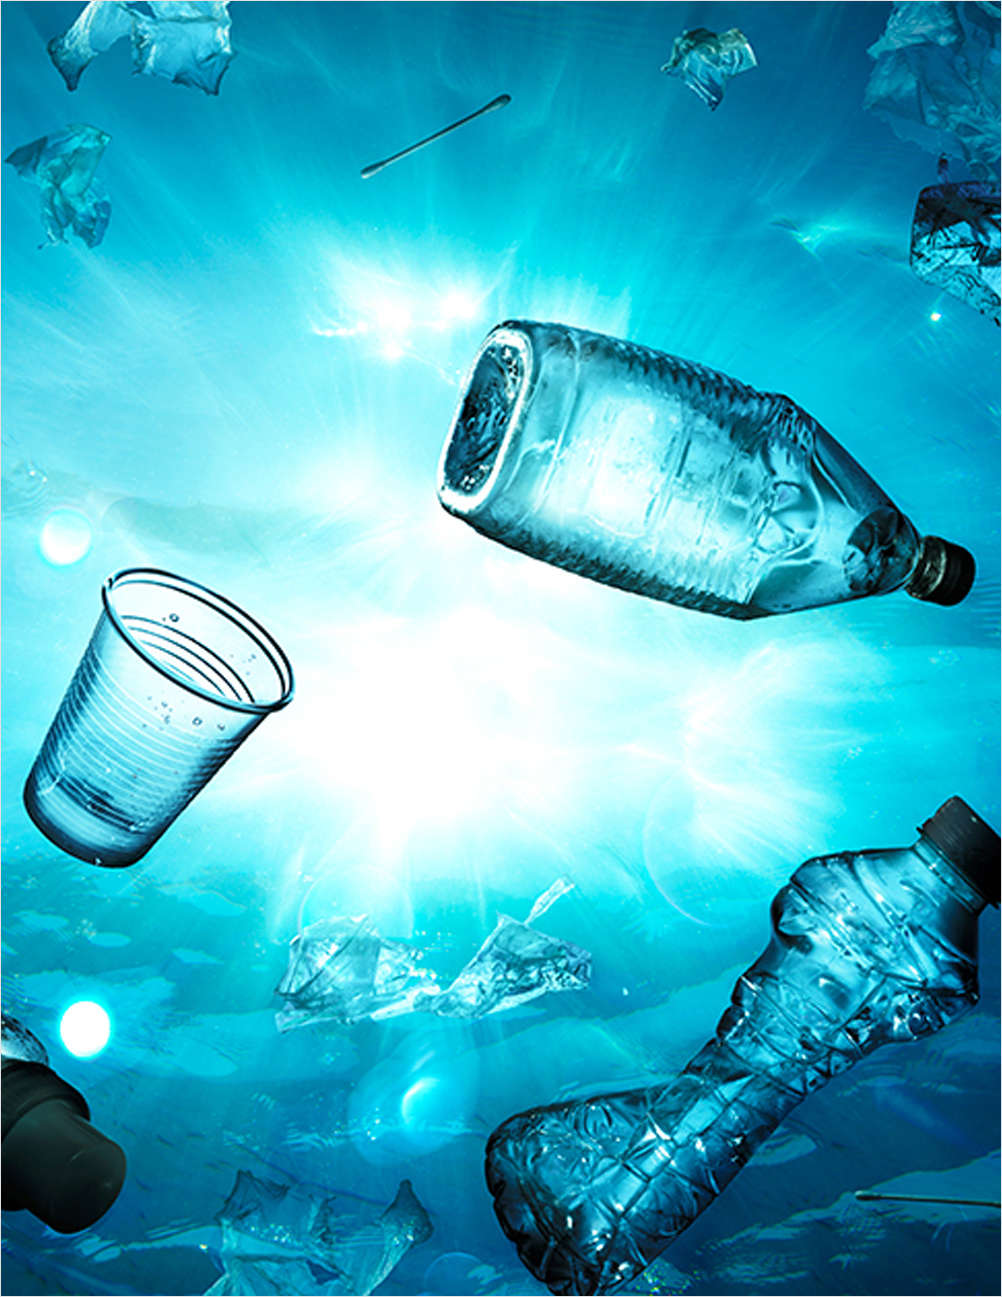 Global Plastic Pollution and Potential Solutions Across the Value Chain